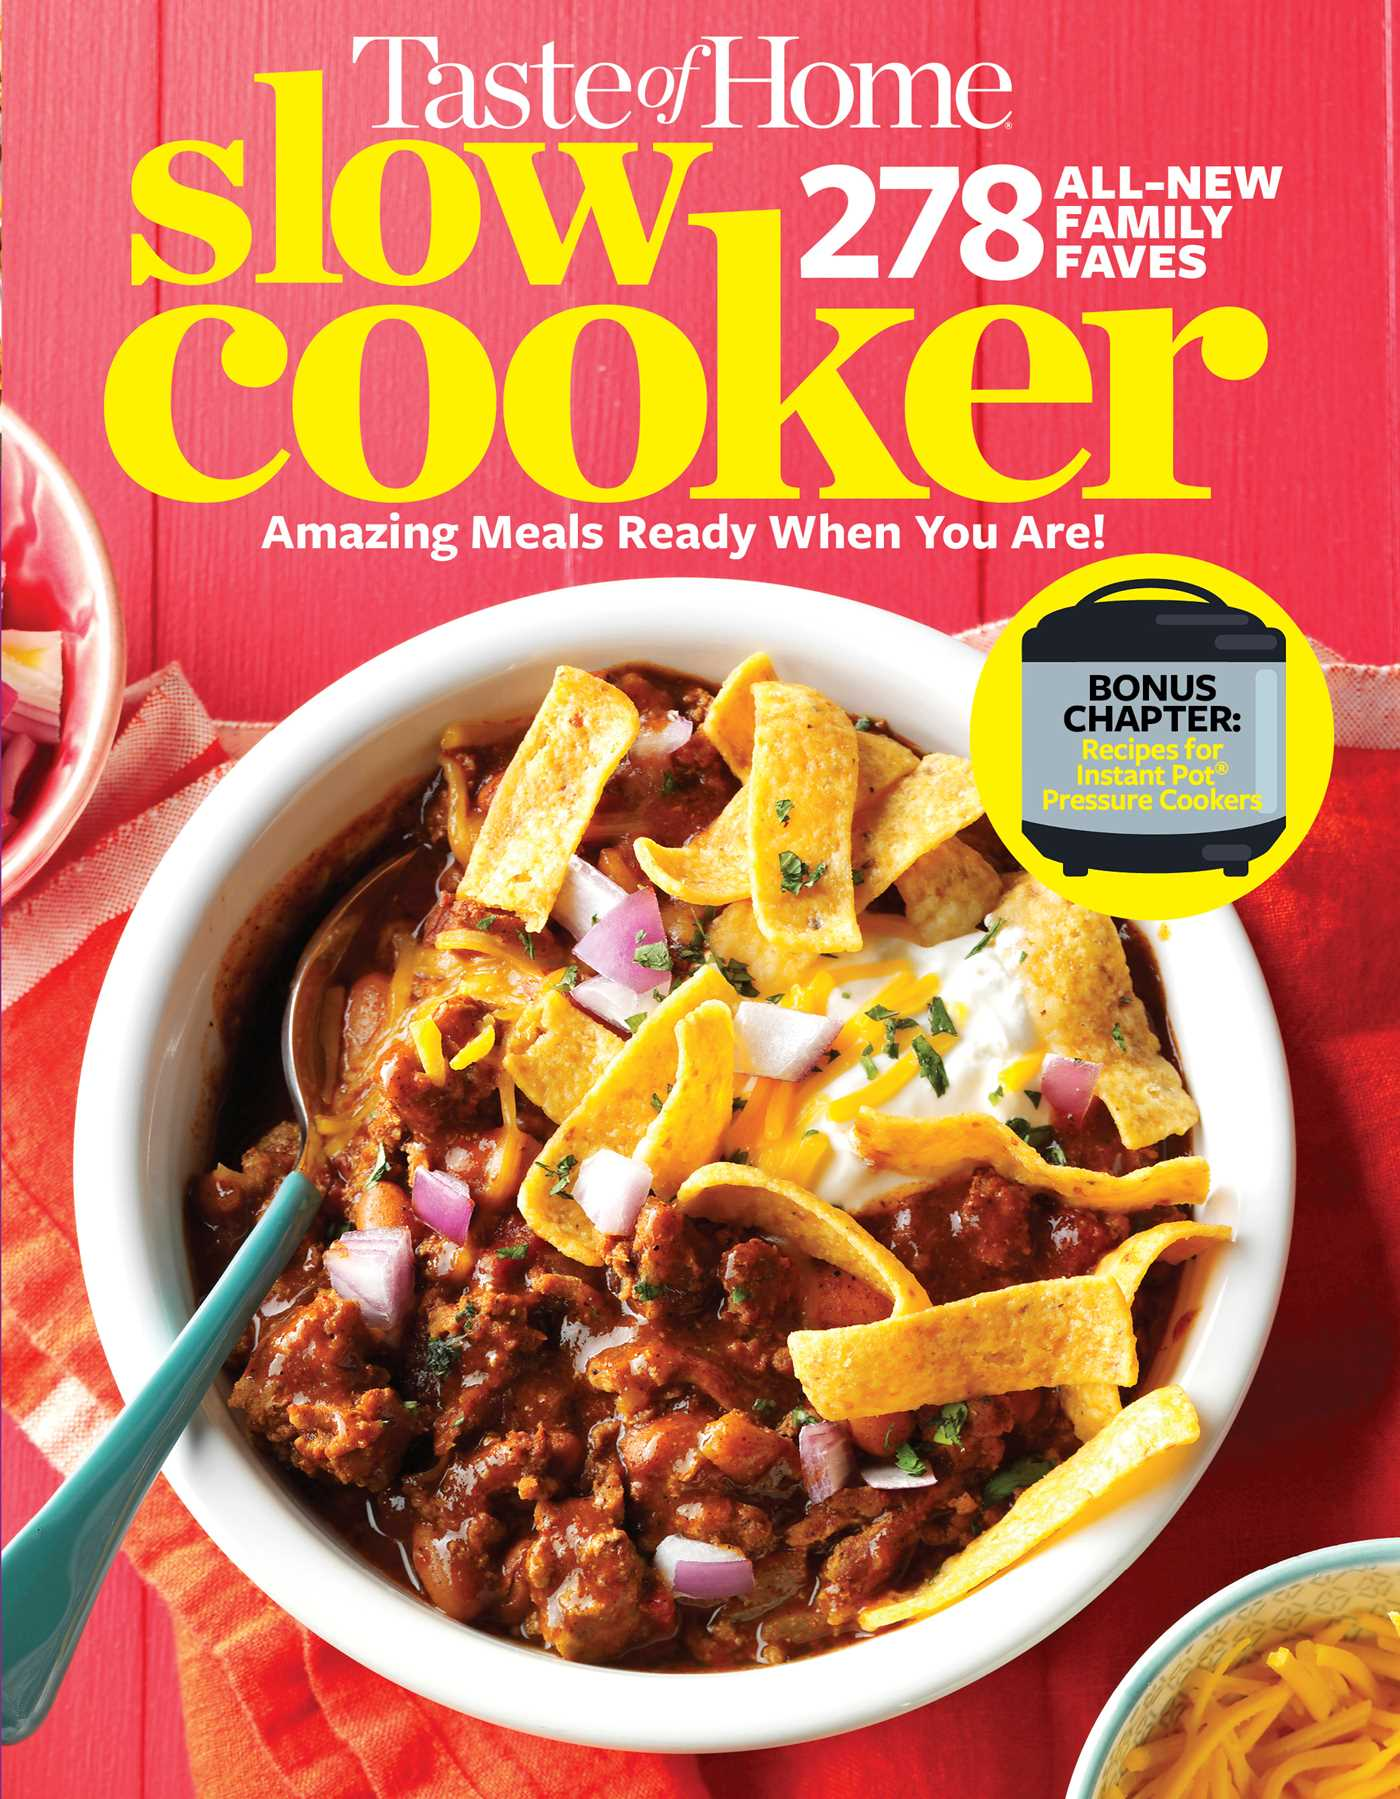 Taste of home slow cooker 3e 9781617656842 hr